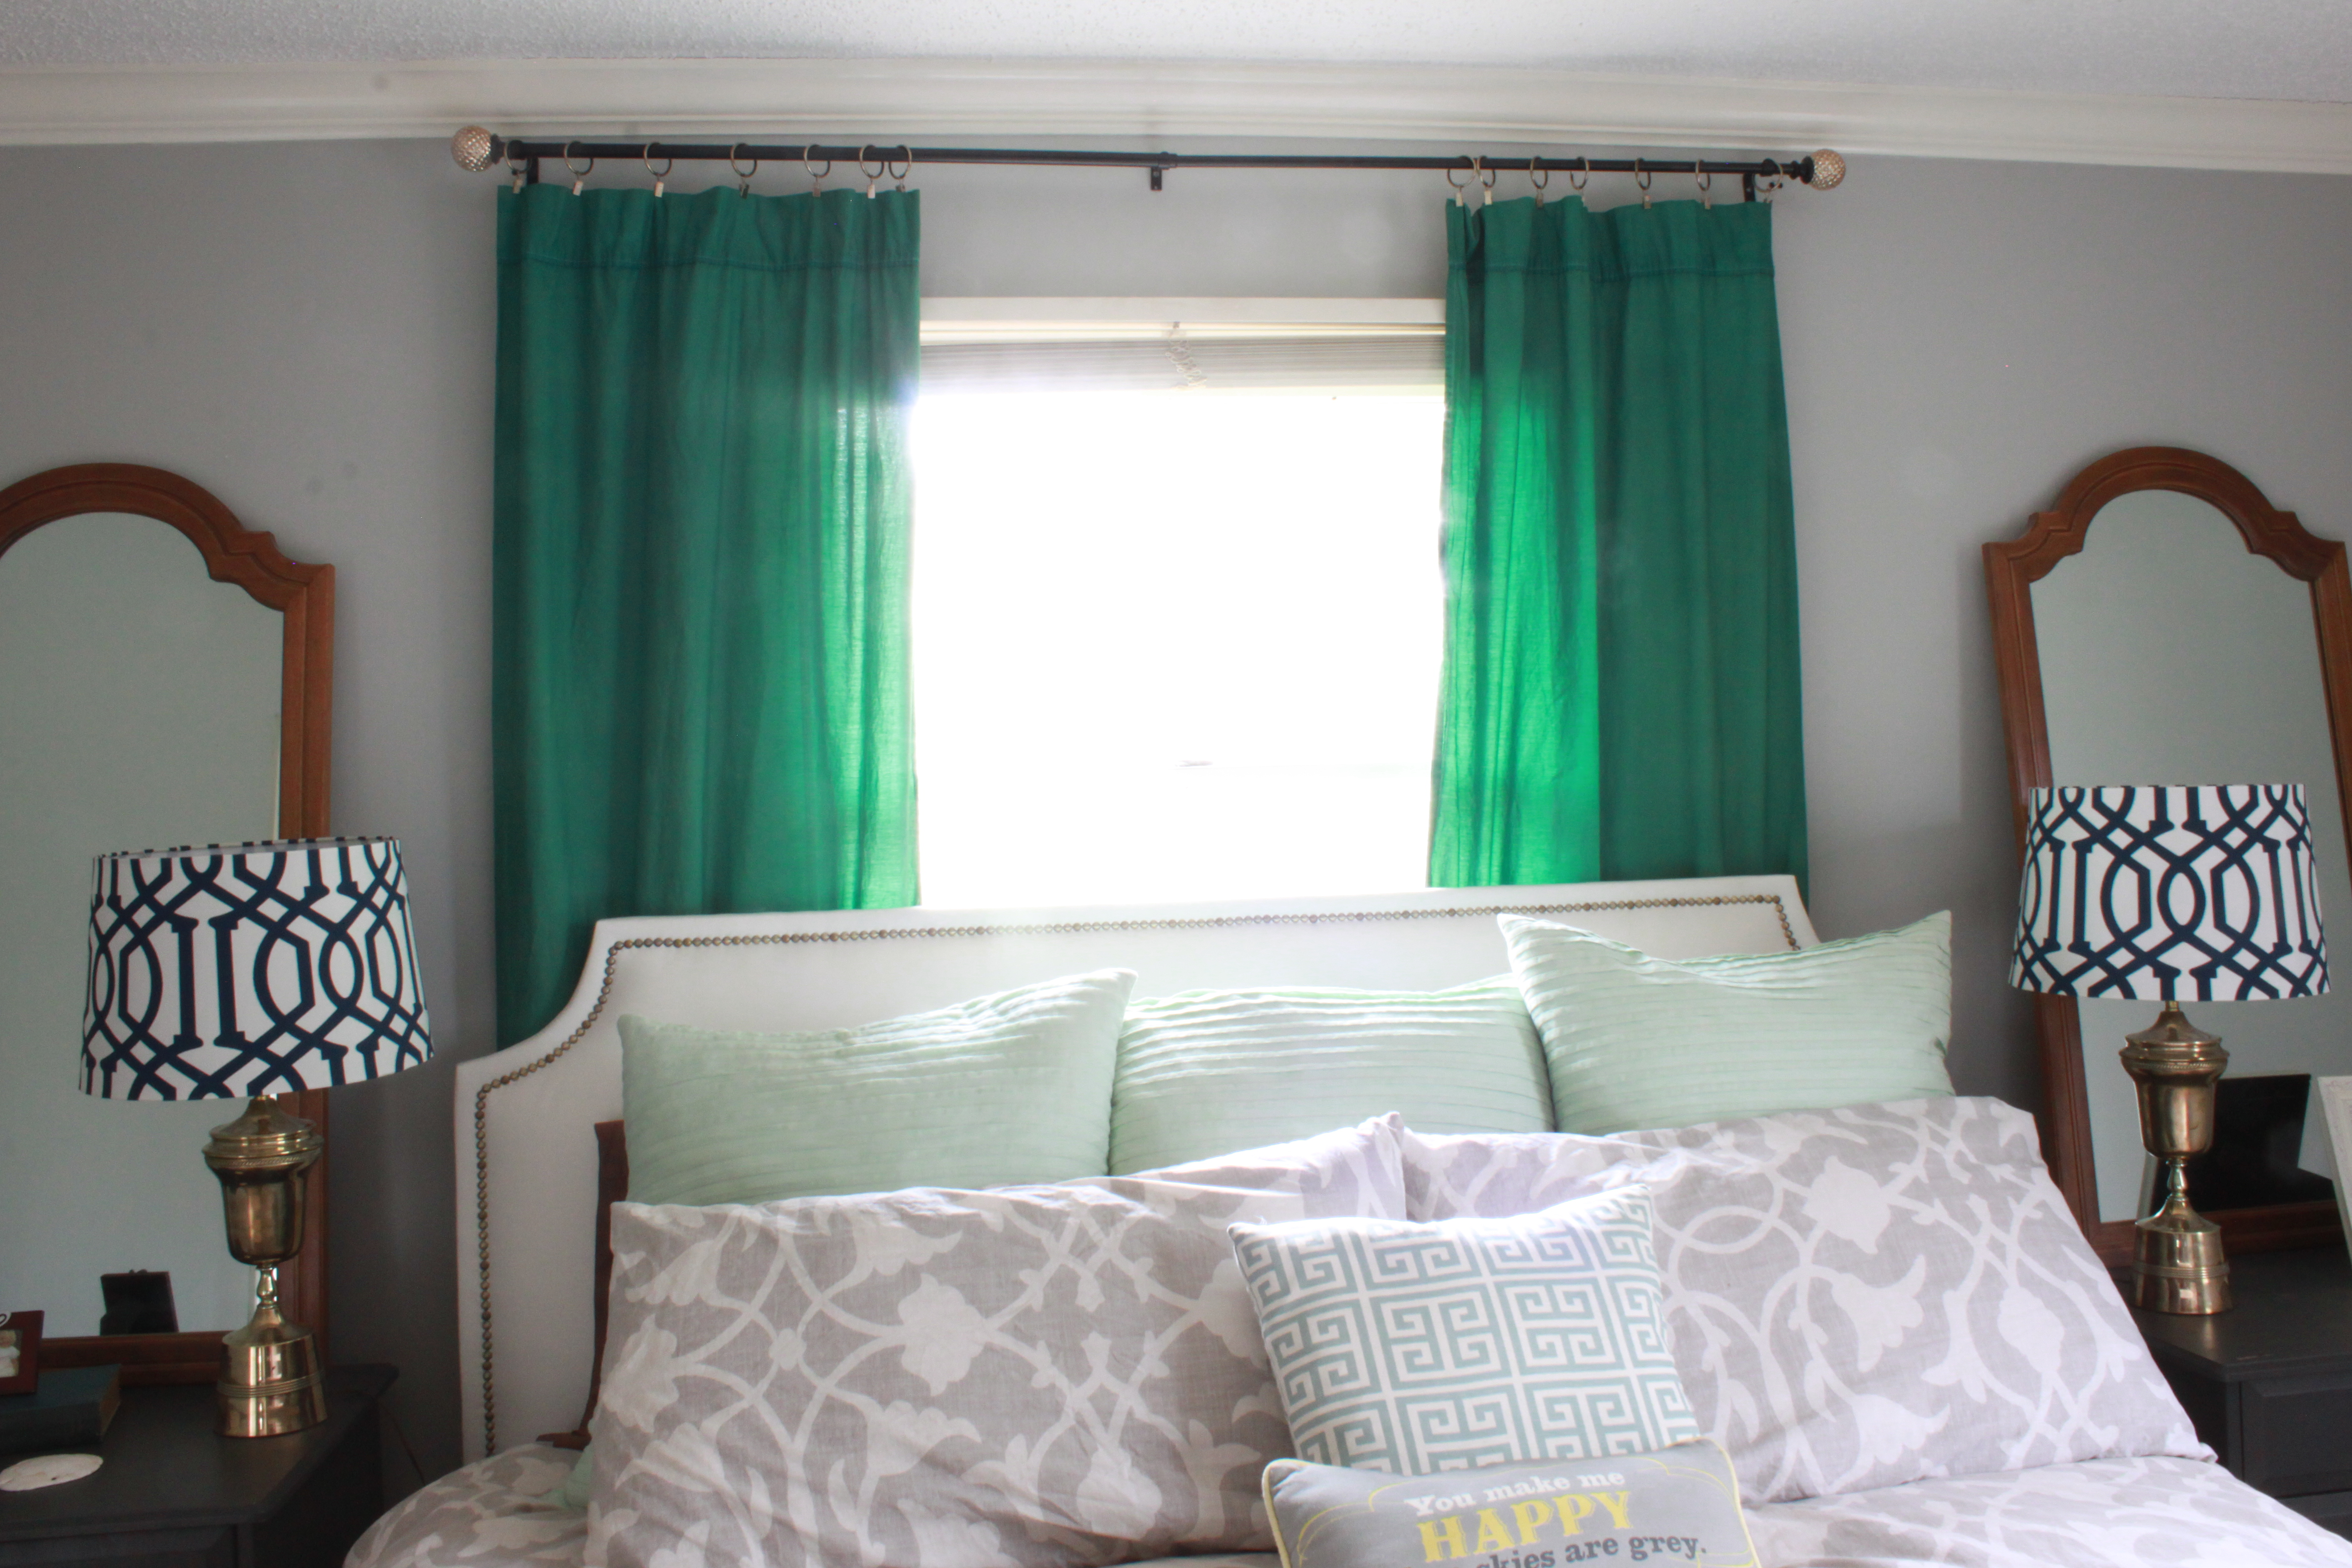 lighting free images curtains green window covering treatment design curtain glass wall home interior photo en door room